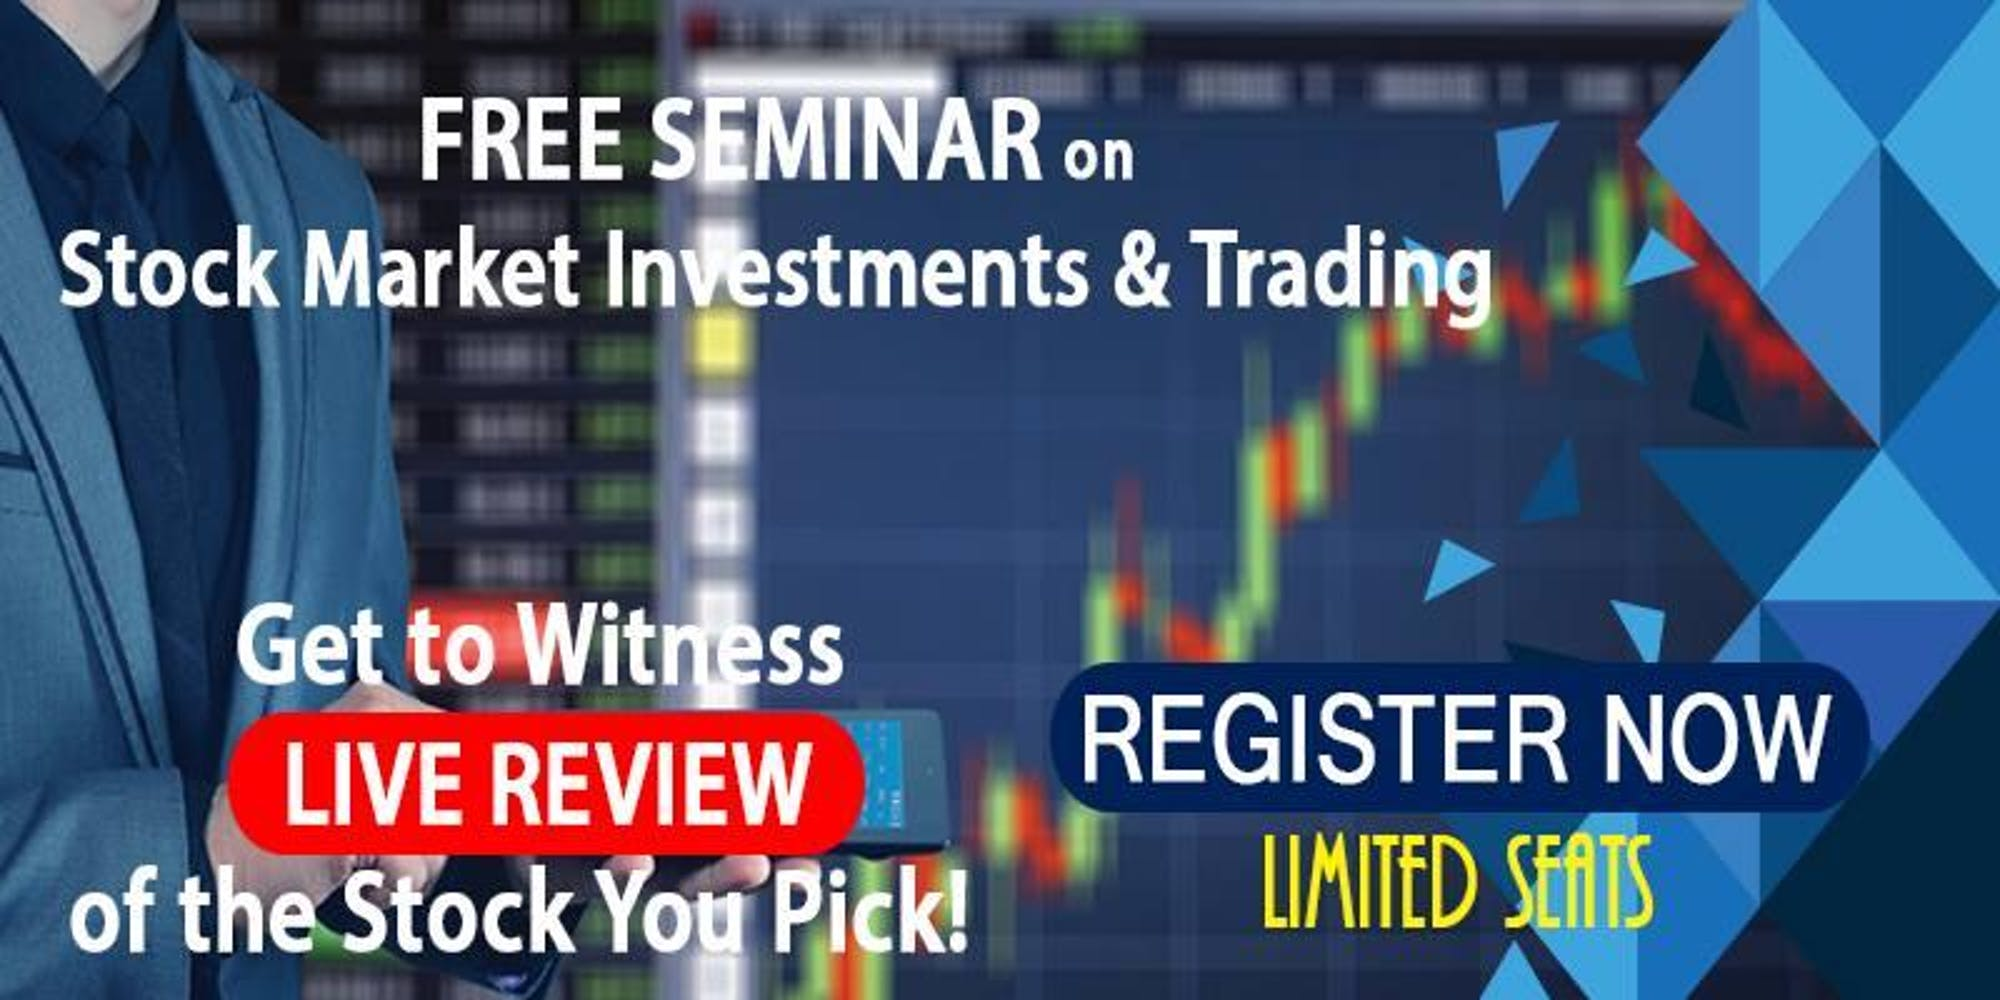 Seminar on Stock Market Investments & Trading| Live Review|